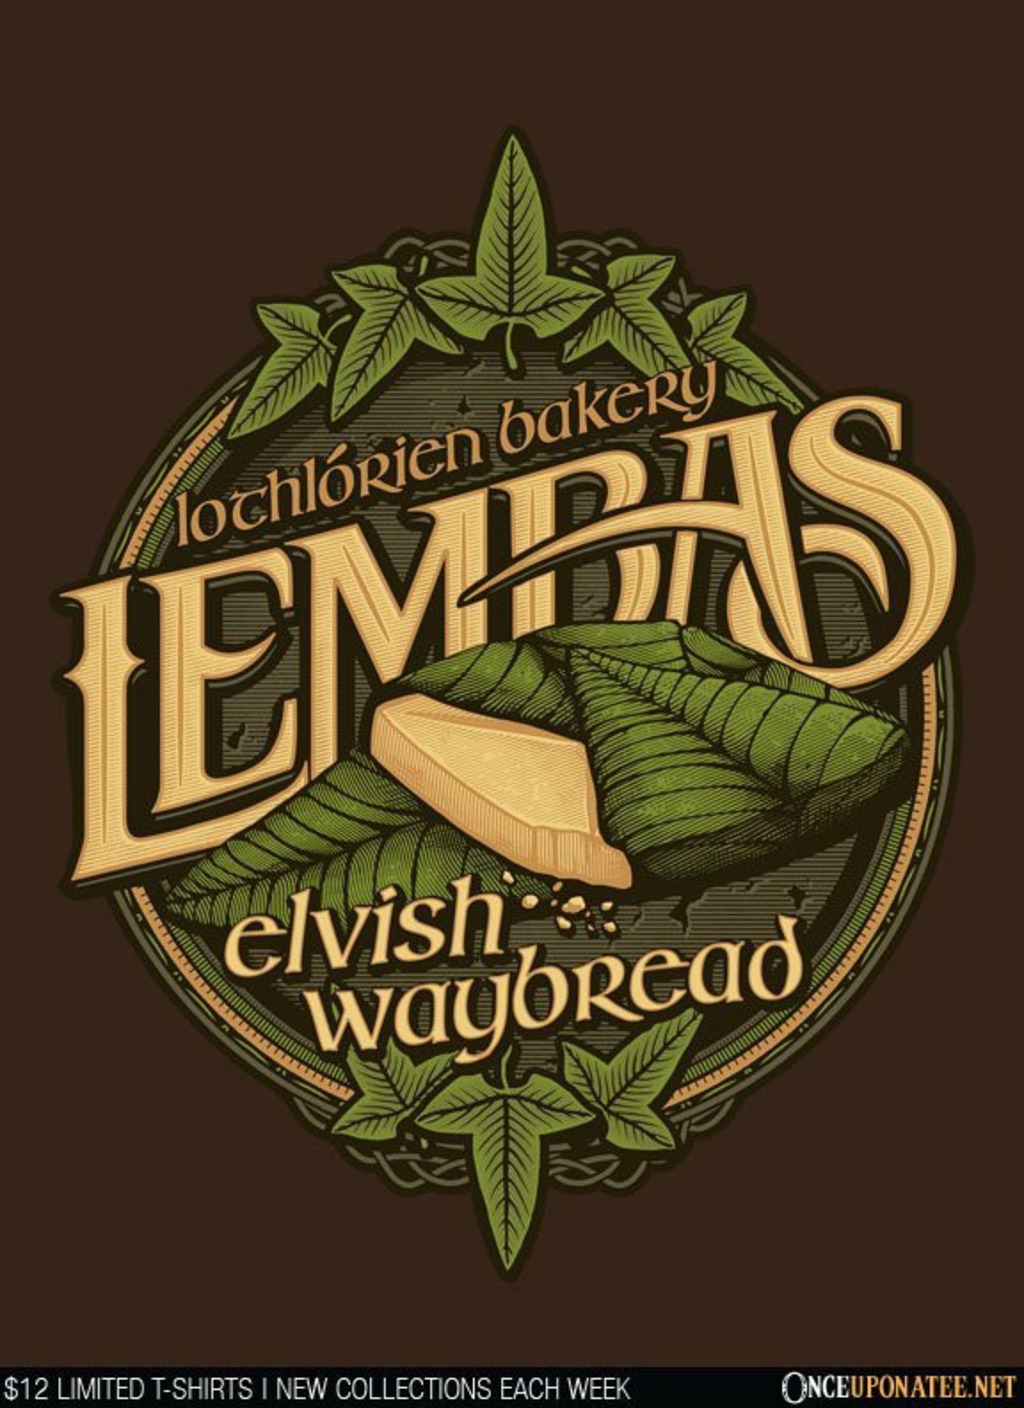 Once Upon a Tee: Lembas Bread